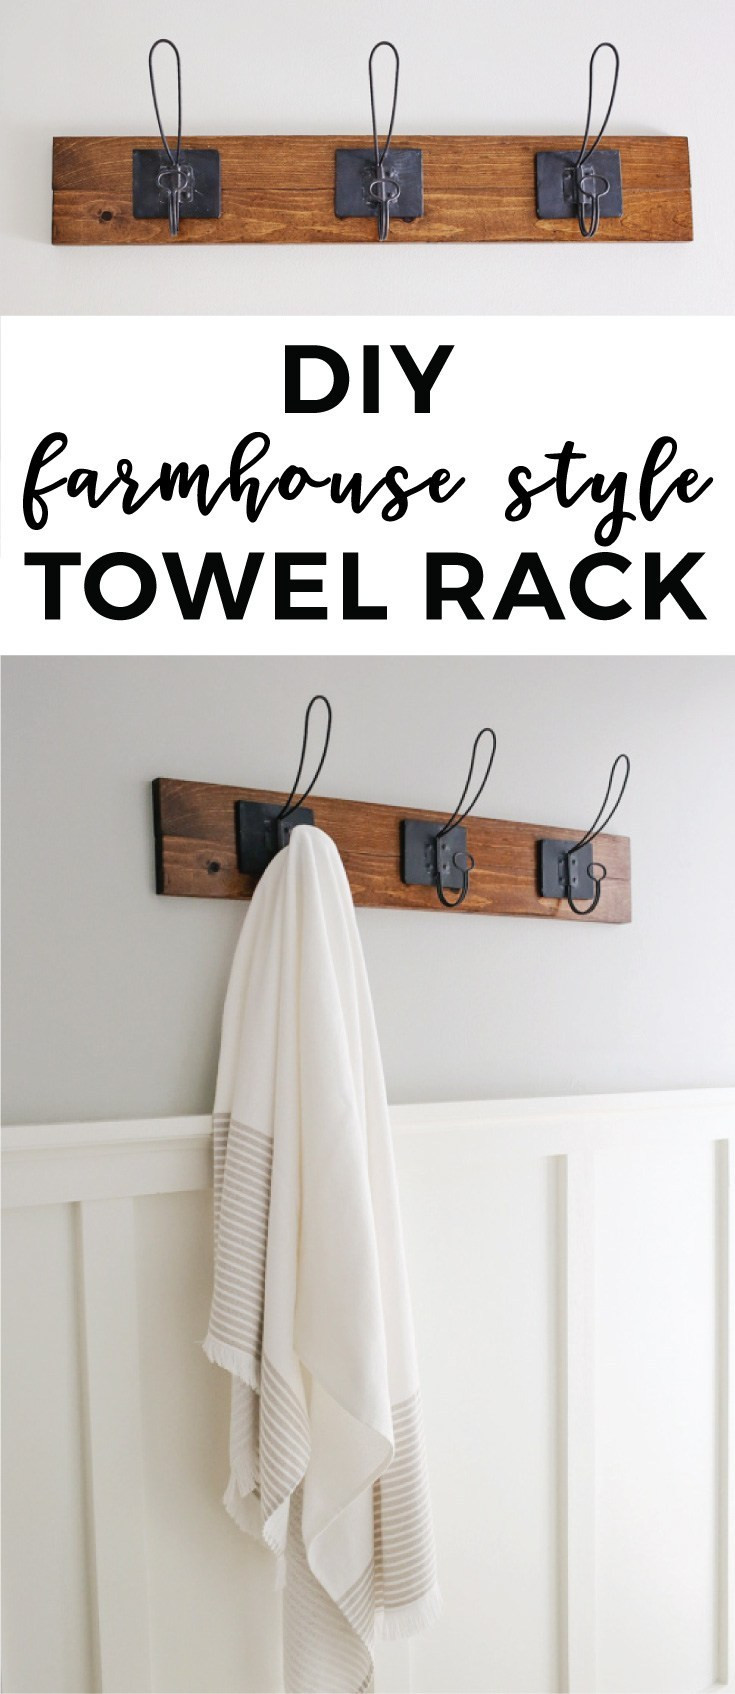 Best ideas about DIY Towel Rack . Save or Pin Farmhouse Style DIY Towel Rack Angela Marie Made Now.